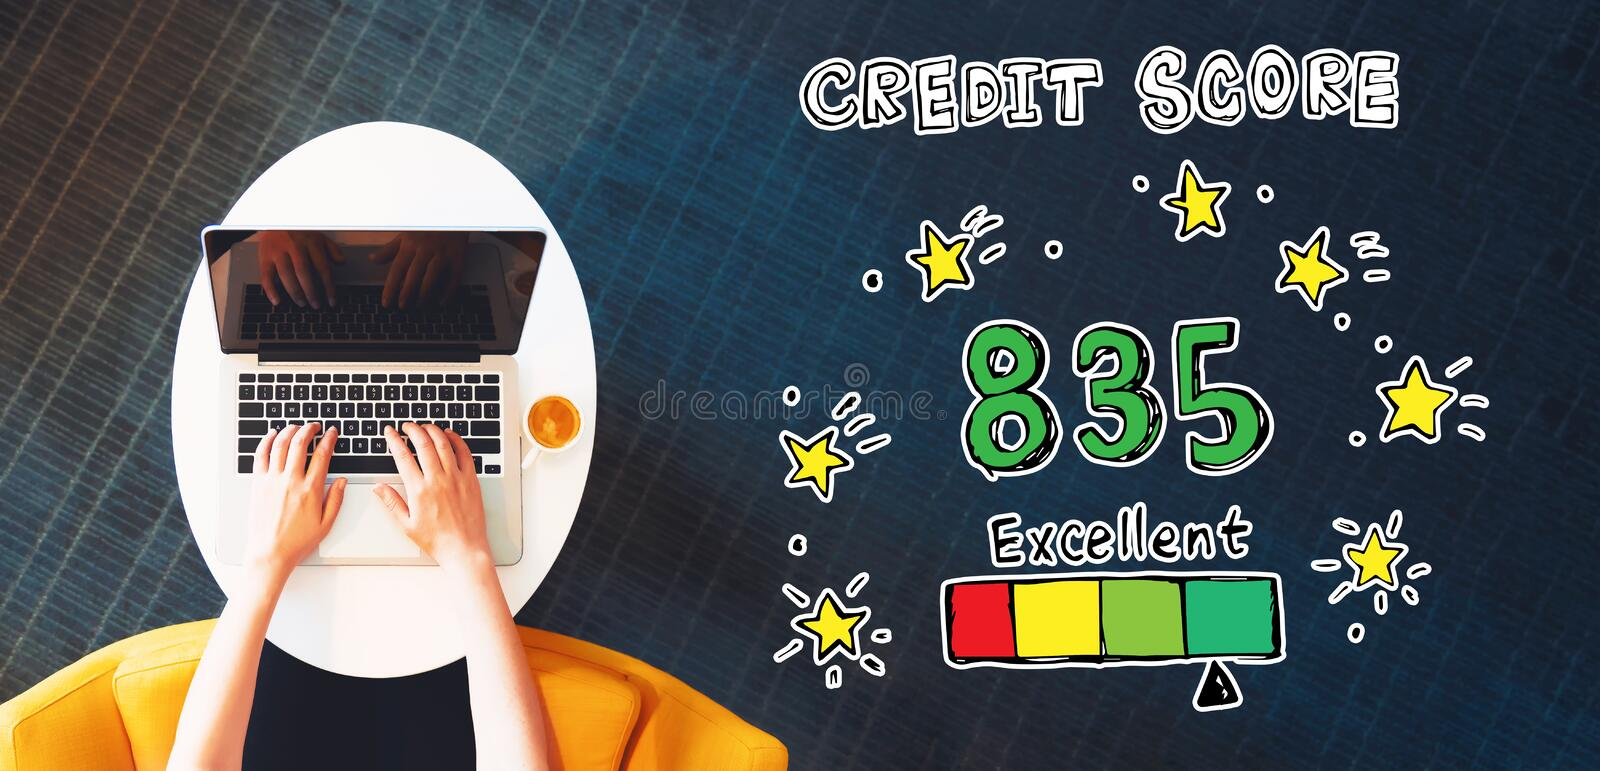 Excellent credit score theme with person using a laptop. On a white table Gold bird ornament in a snow covered landscape royalty free illustration